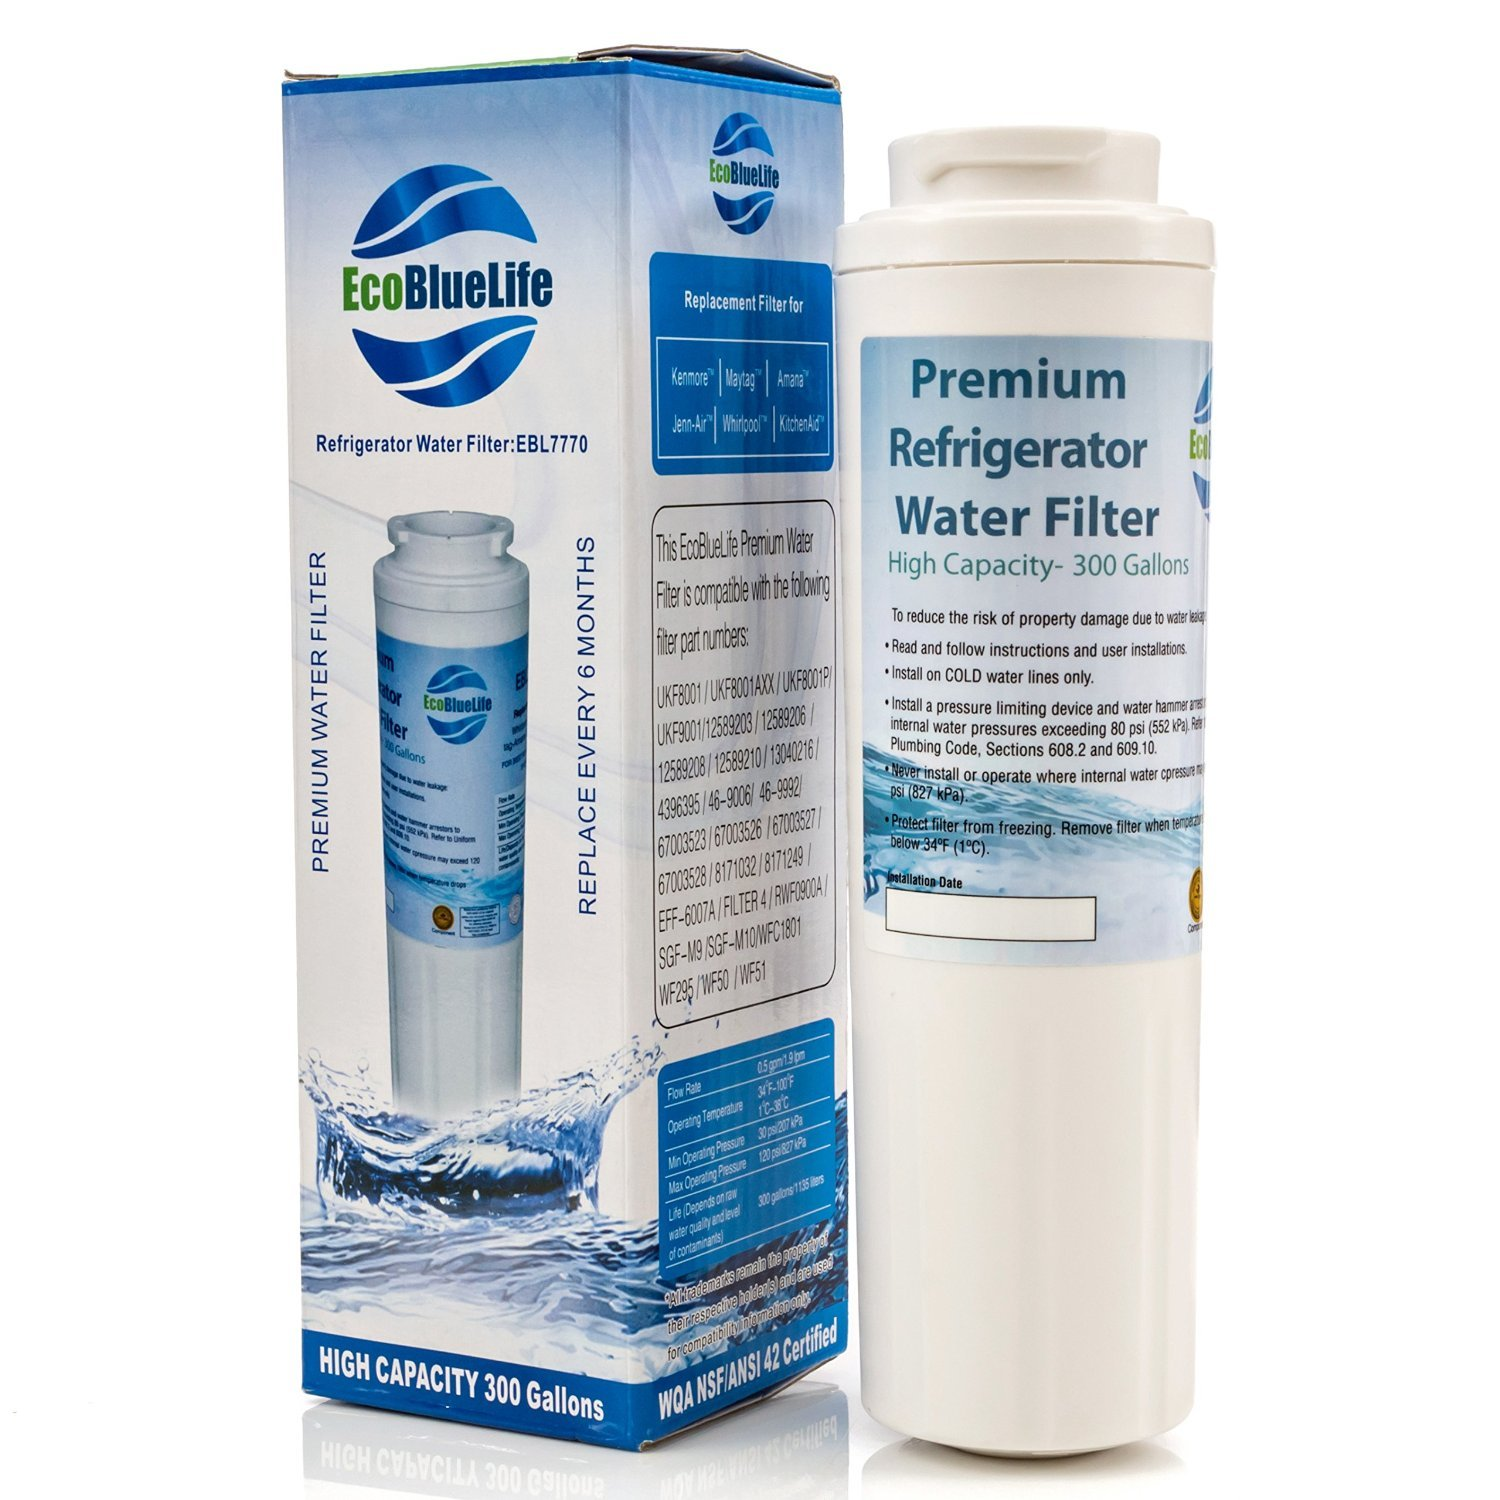 EcoBlueLife Whirlpool Maytag UKF8001, EDR4RXD1 4396395, Pur Filter 4, Kenmore 46-9005, Mist, More Pure, Compatible Refrigerator Water Filter Replacement